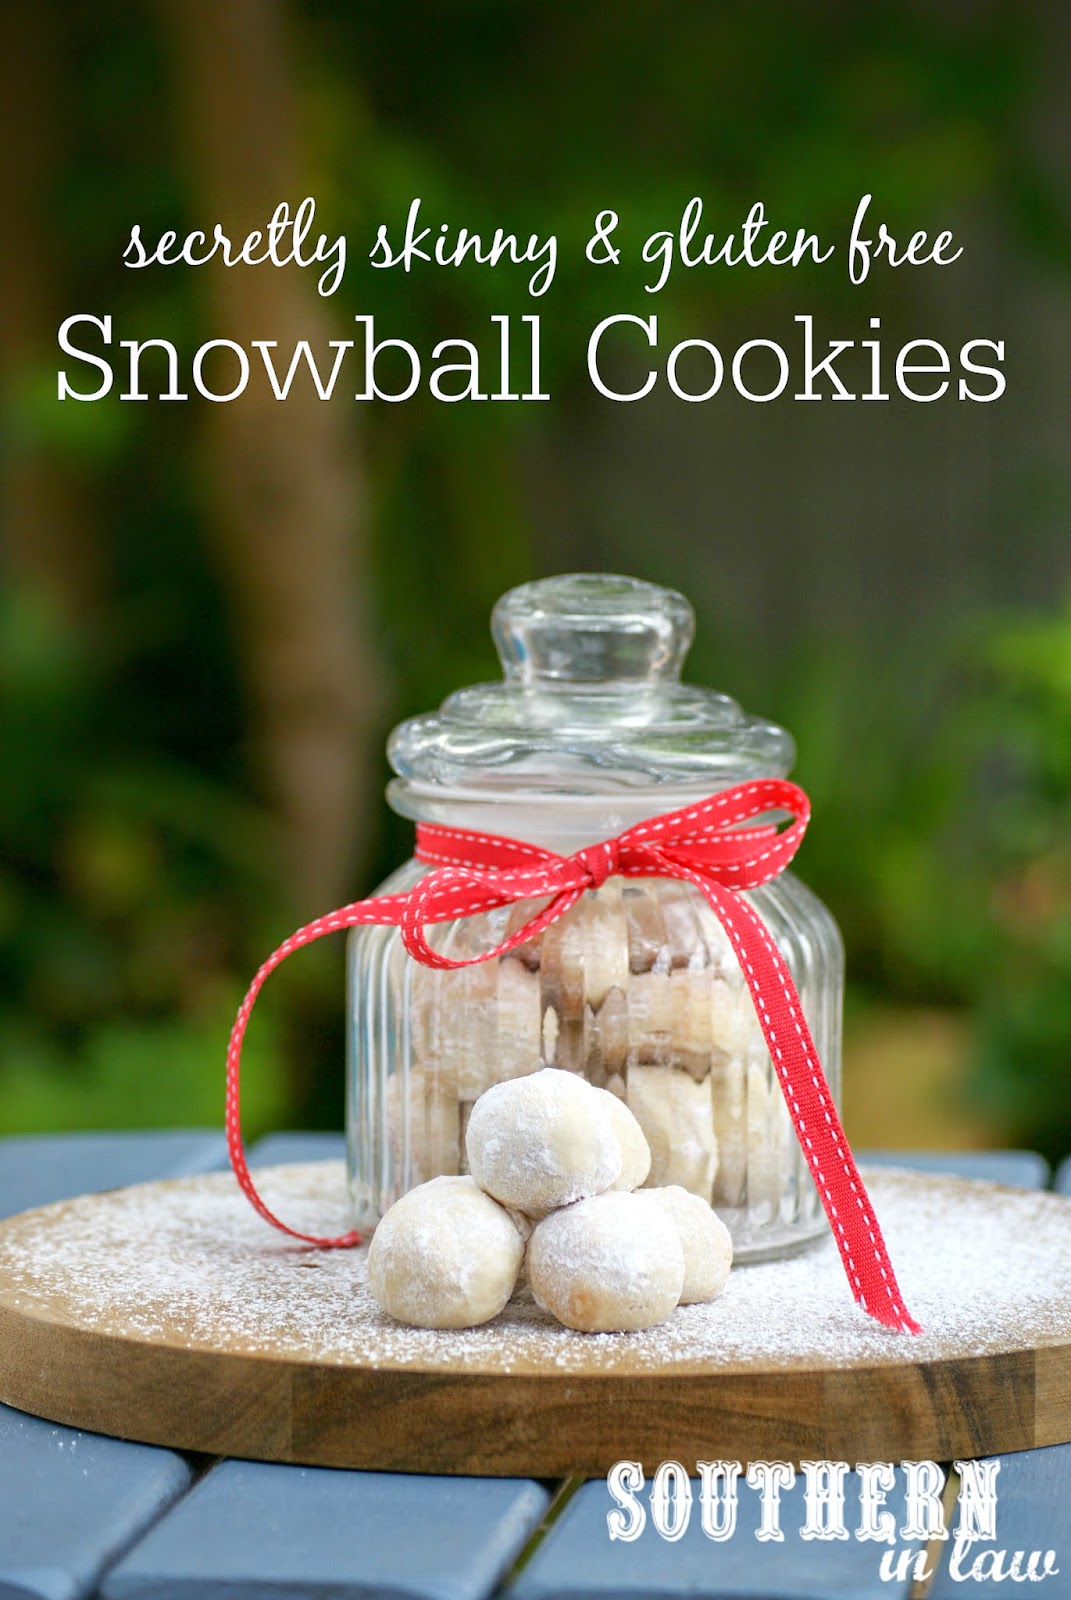 Healthier Snowball Cookies Recipe - low fat, low sugar, gluten free, egg free, healthy - Christmas Cookie Gift Ideas in a Jar